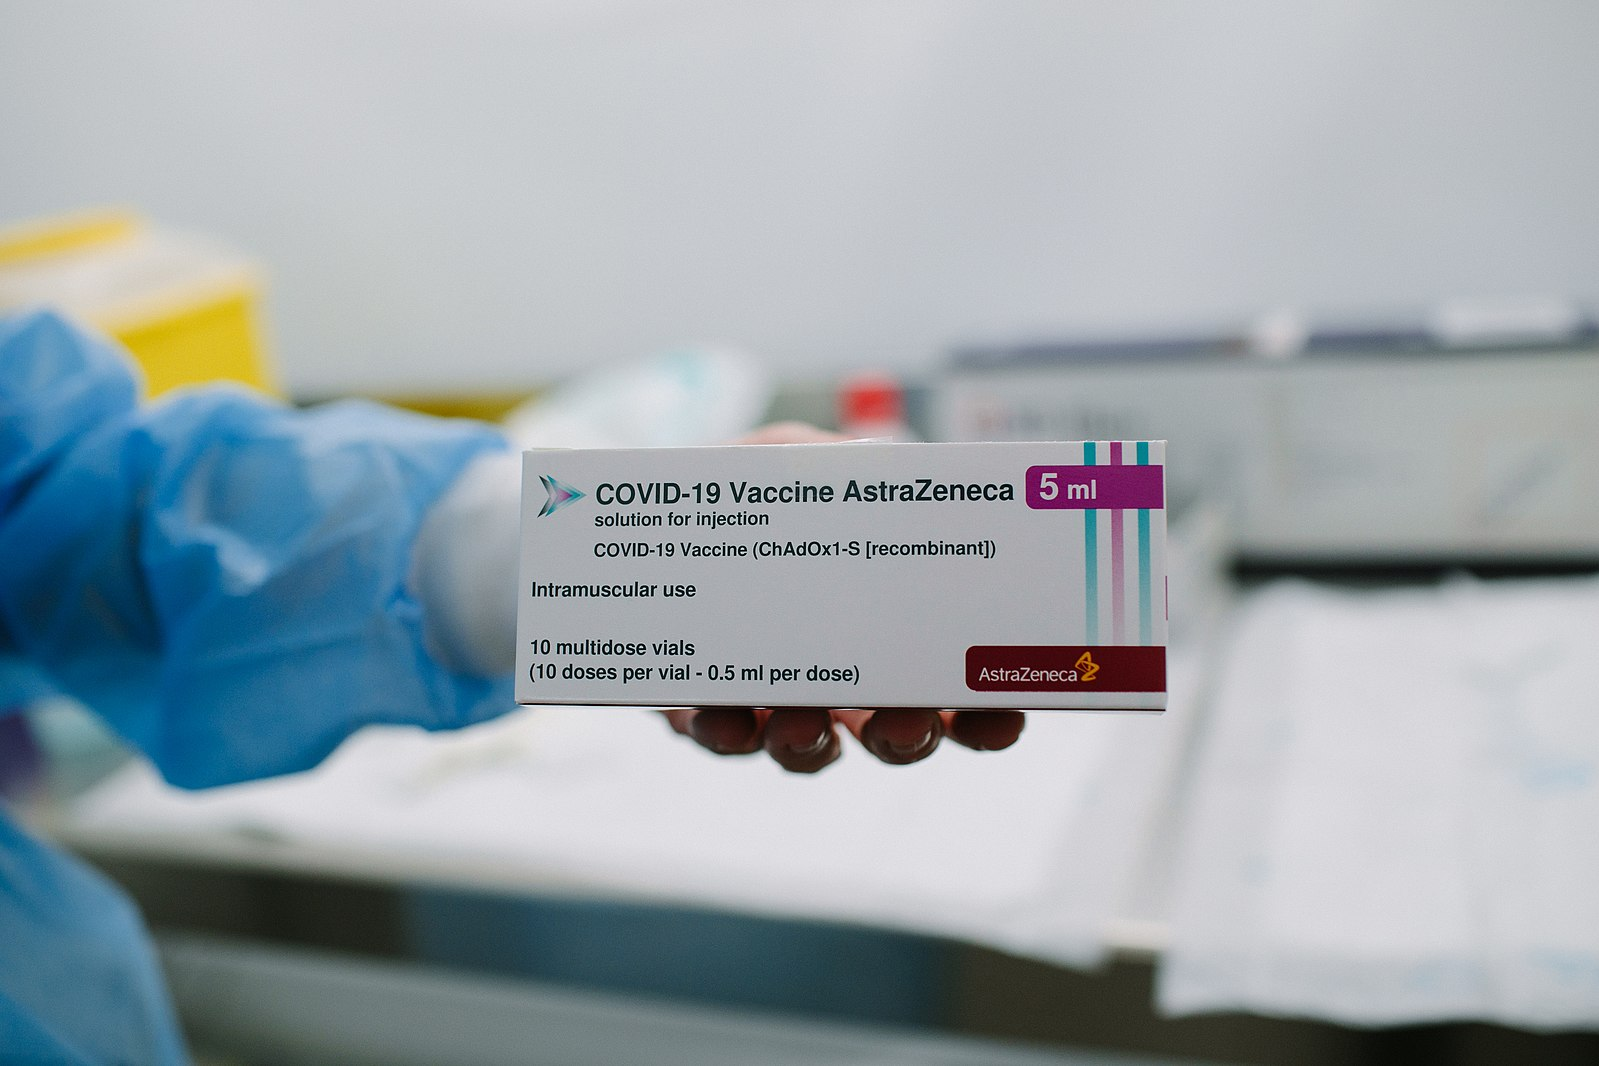 Difference Between AstraZeneca and Moderna